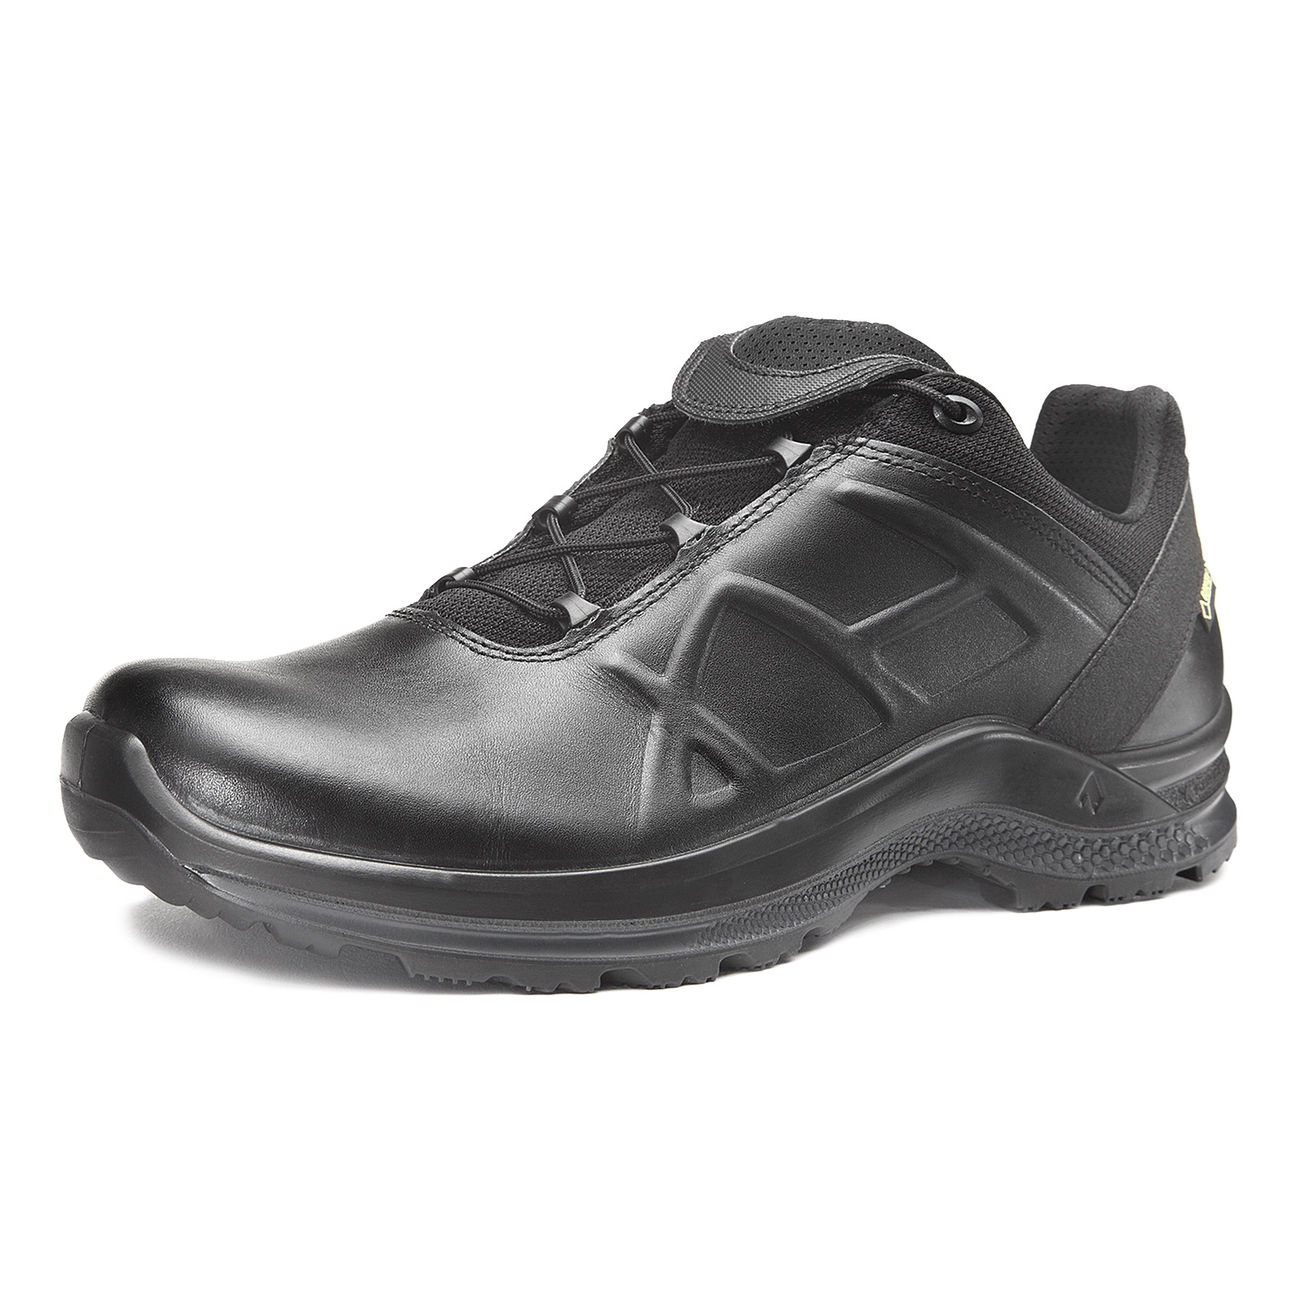 Haix Halbschuh Black Eagle Tactical 2.0 GTX Low schwarz 6